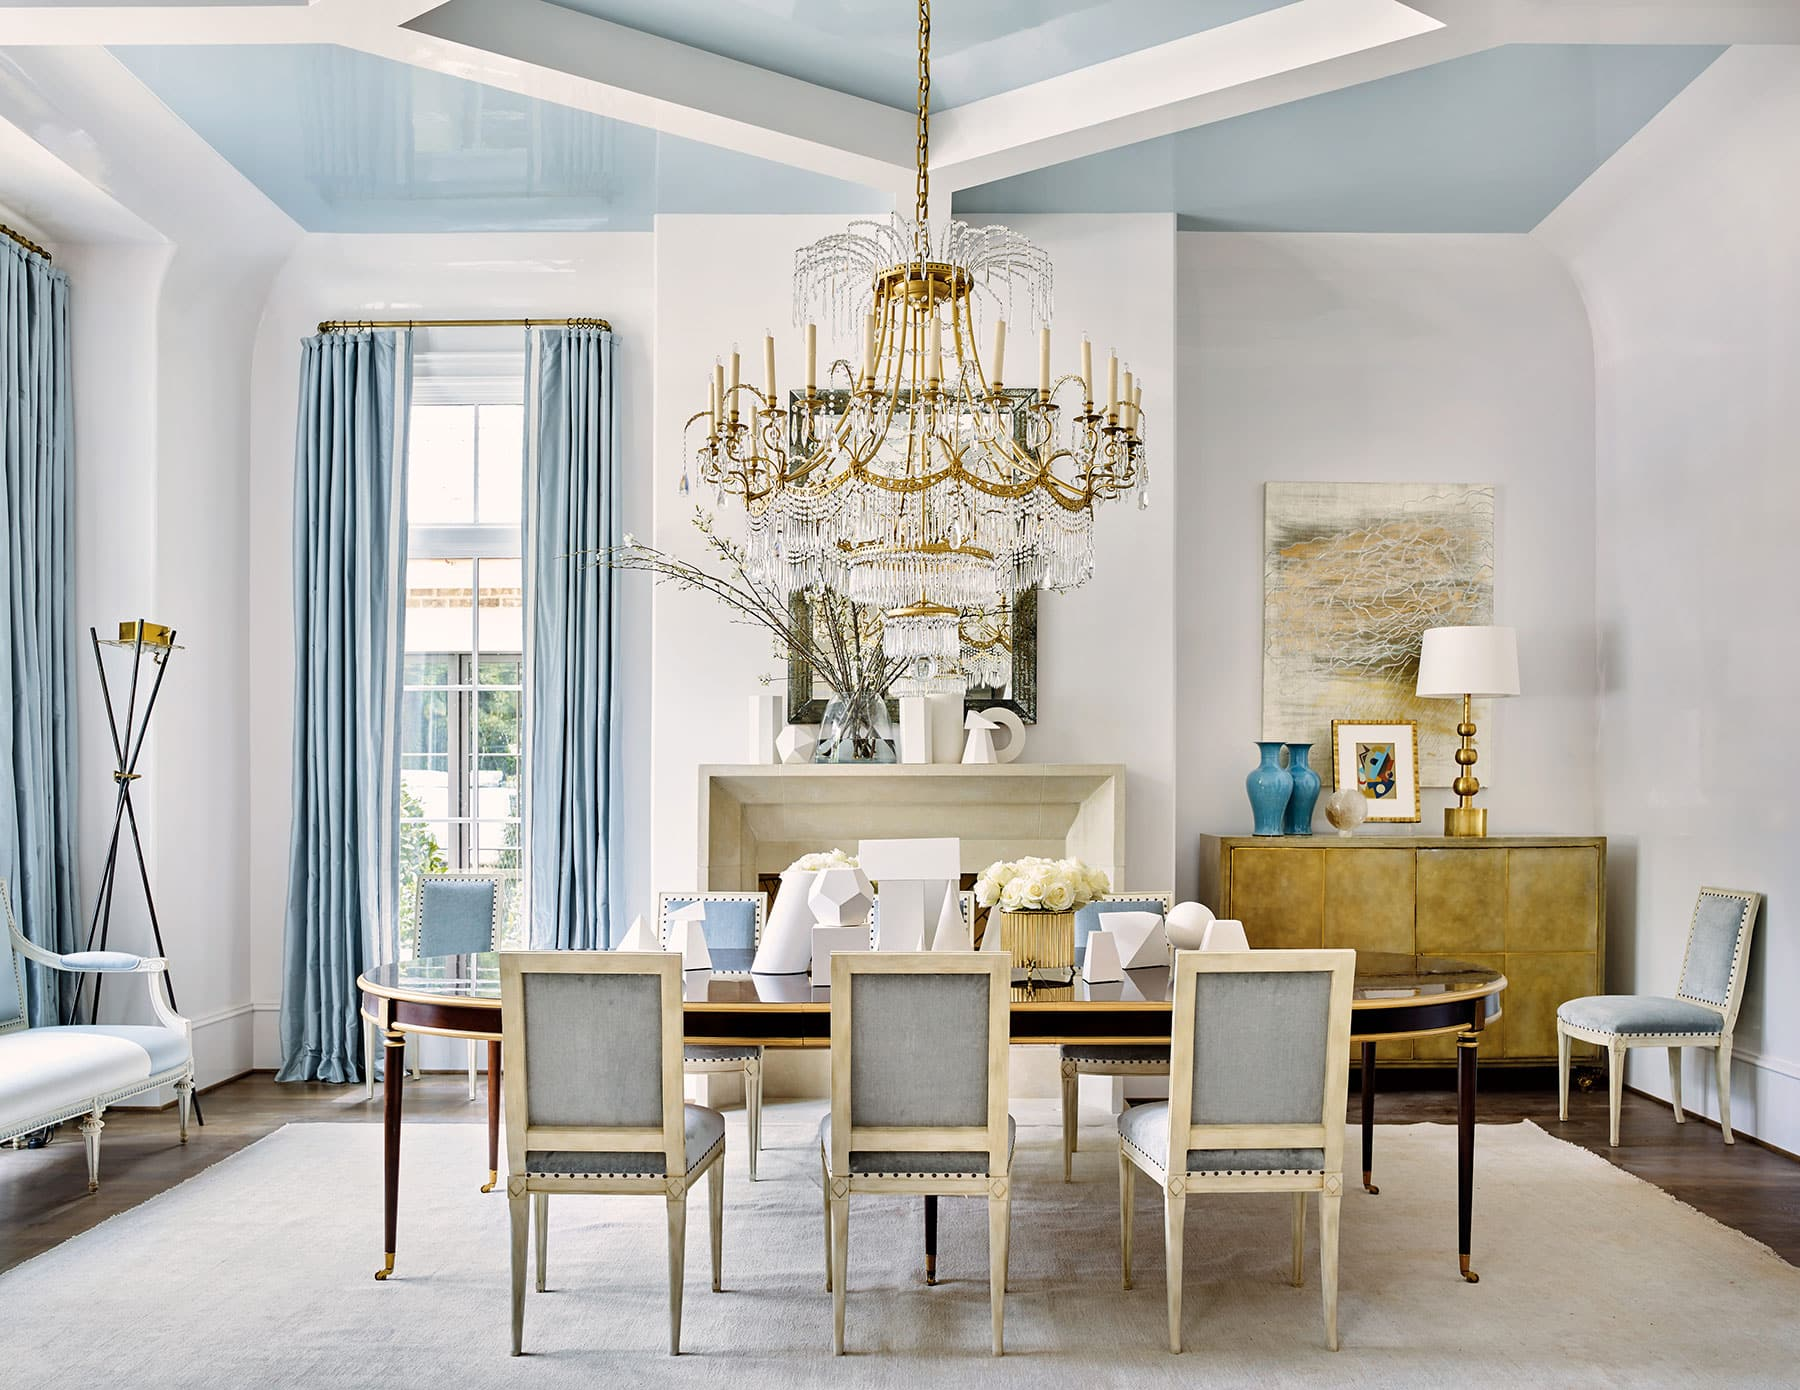 Suzanne Kasler dining room for the Atlanta Homes & Lifestyle showhouse